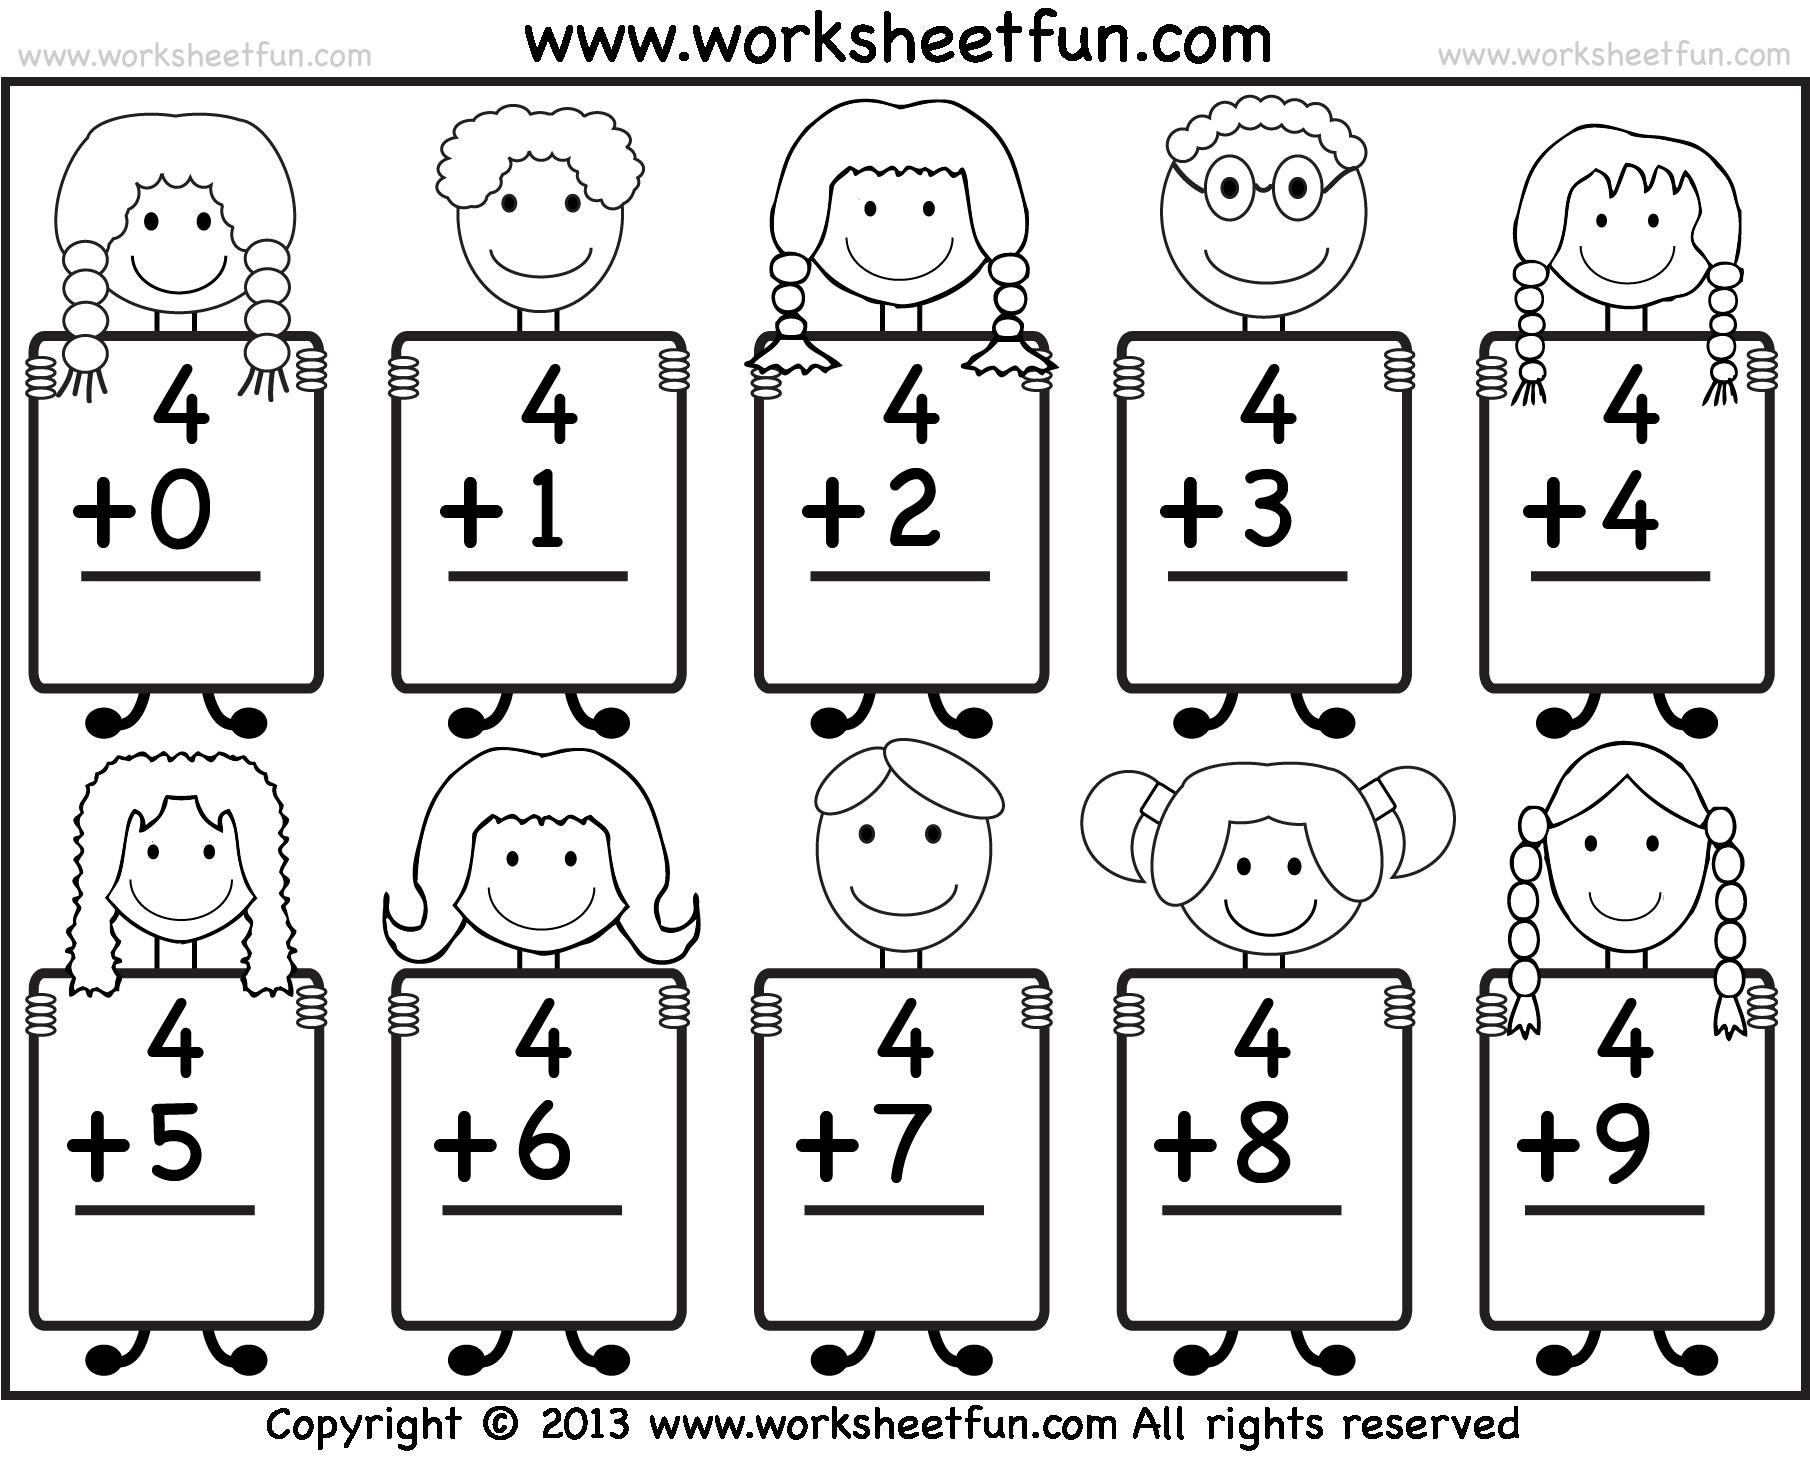 Freeprintablemathworksheetsforkindergartenadditionpng  Freeprintablemathworksheetsforkindergartenadditionpng